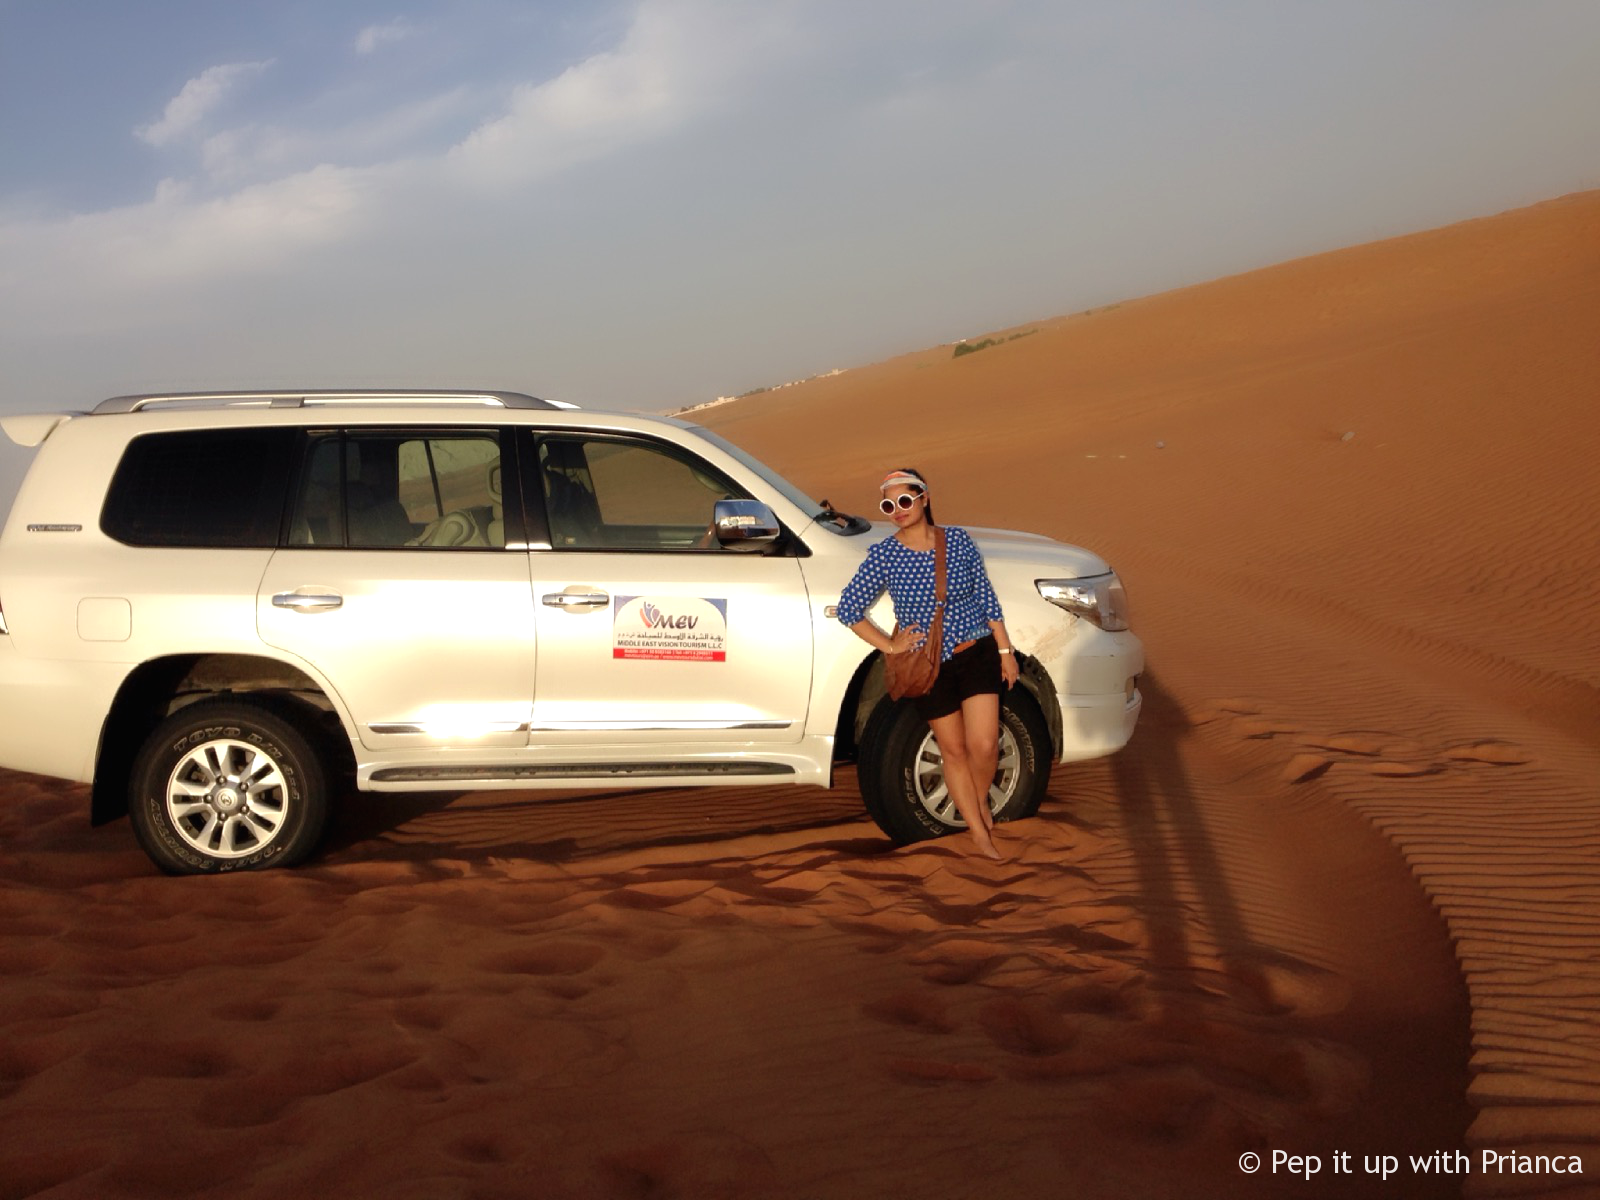 My ride for sand dune bashing